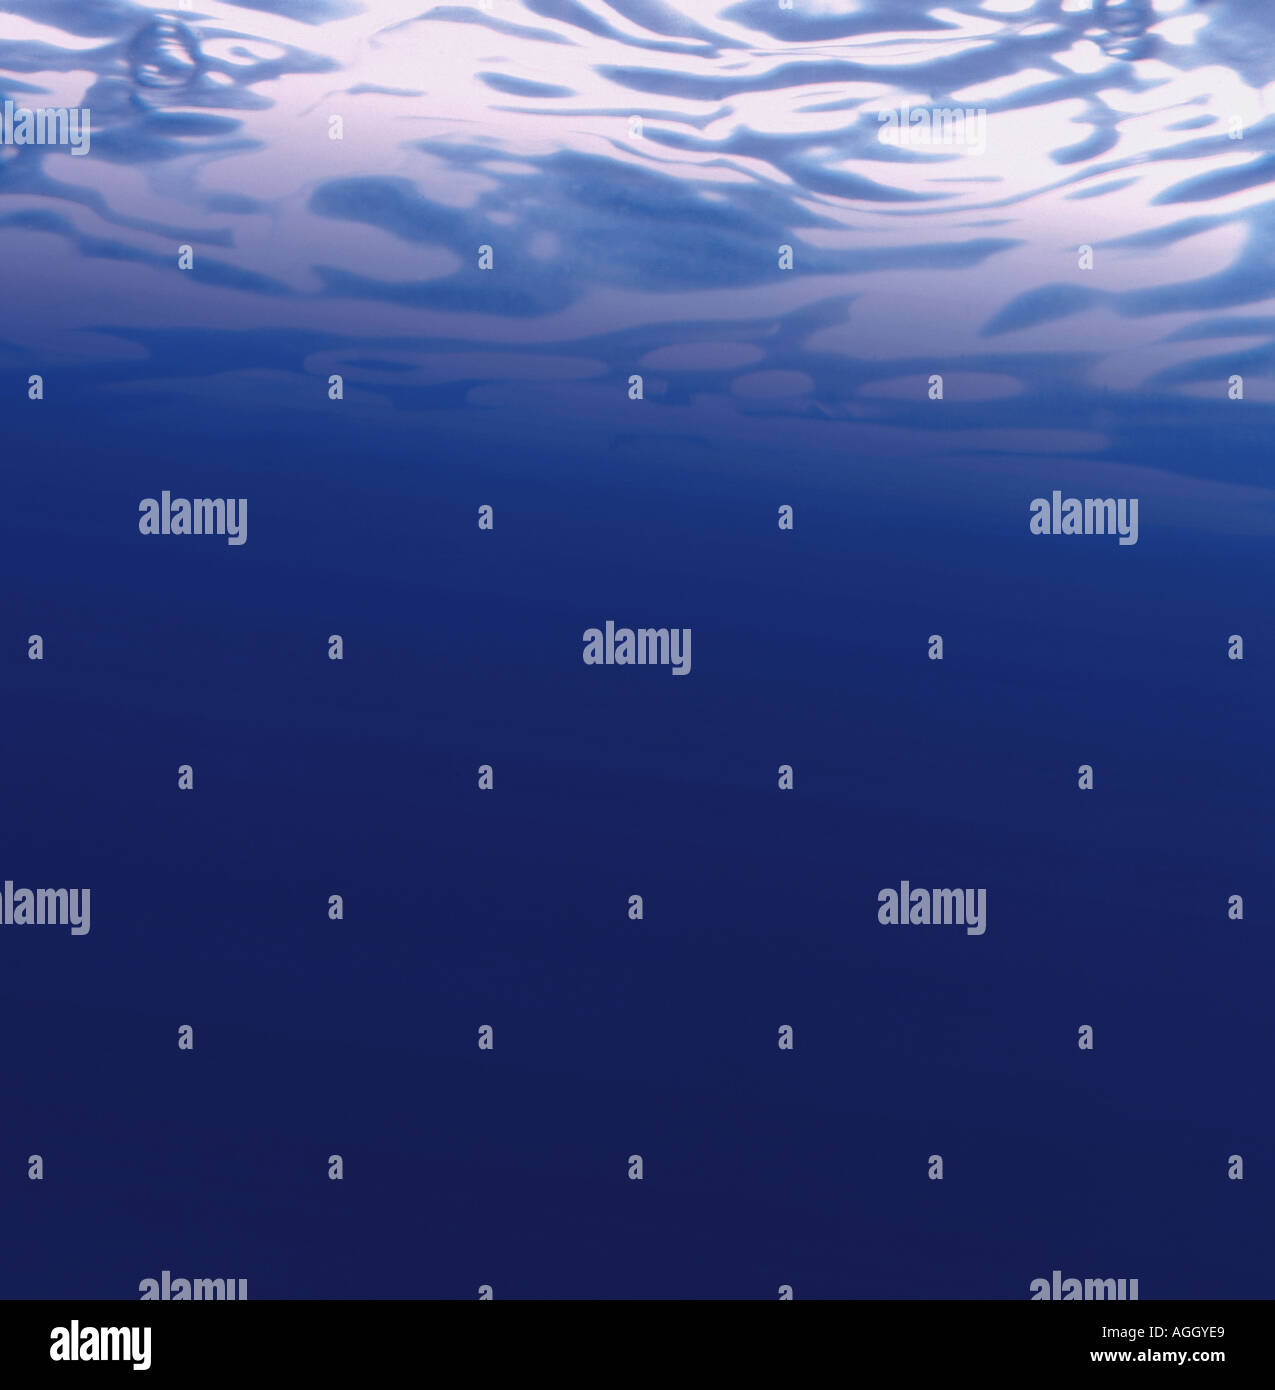 Under water view of sunlit surface - Stock Image